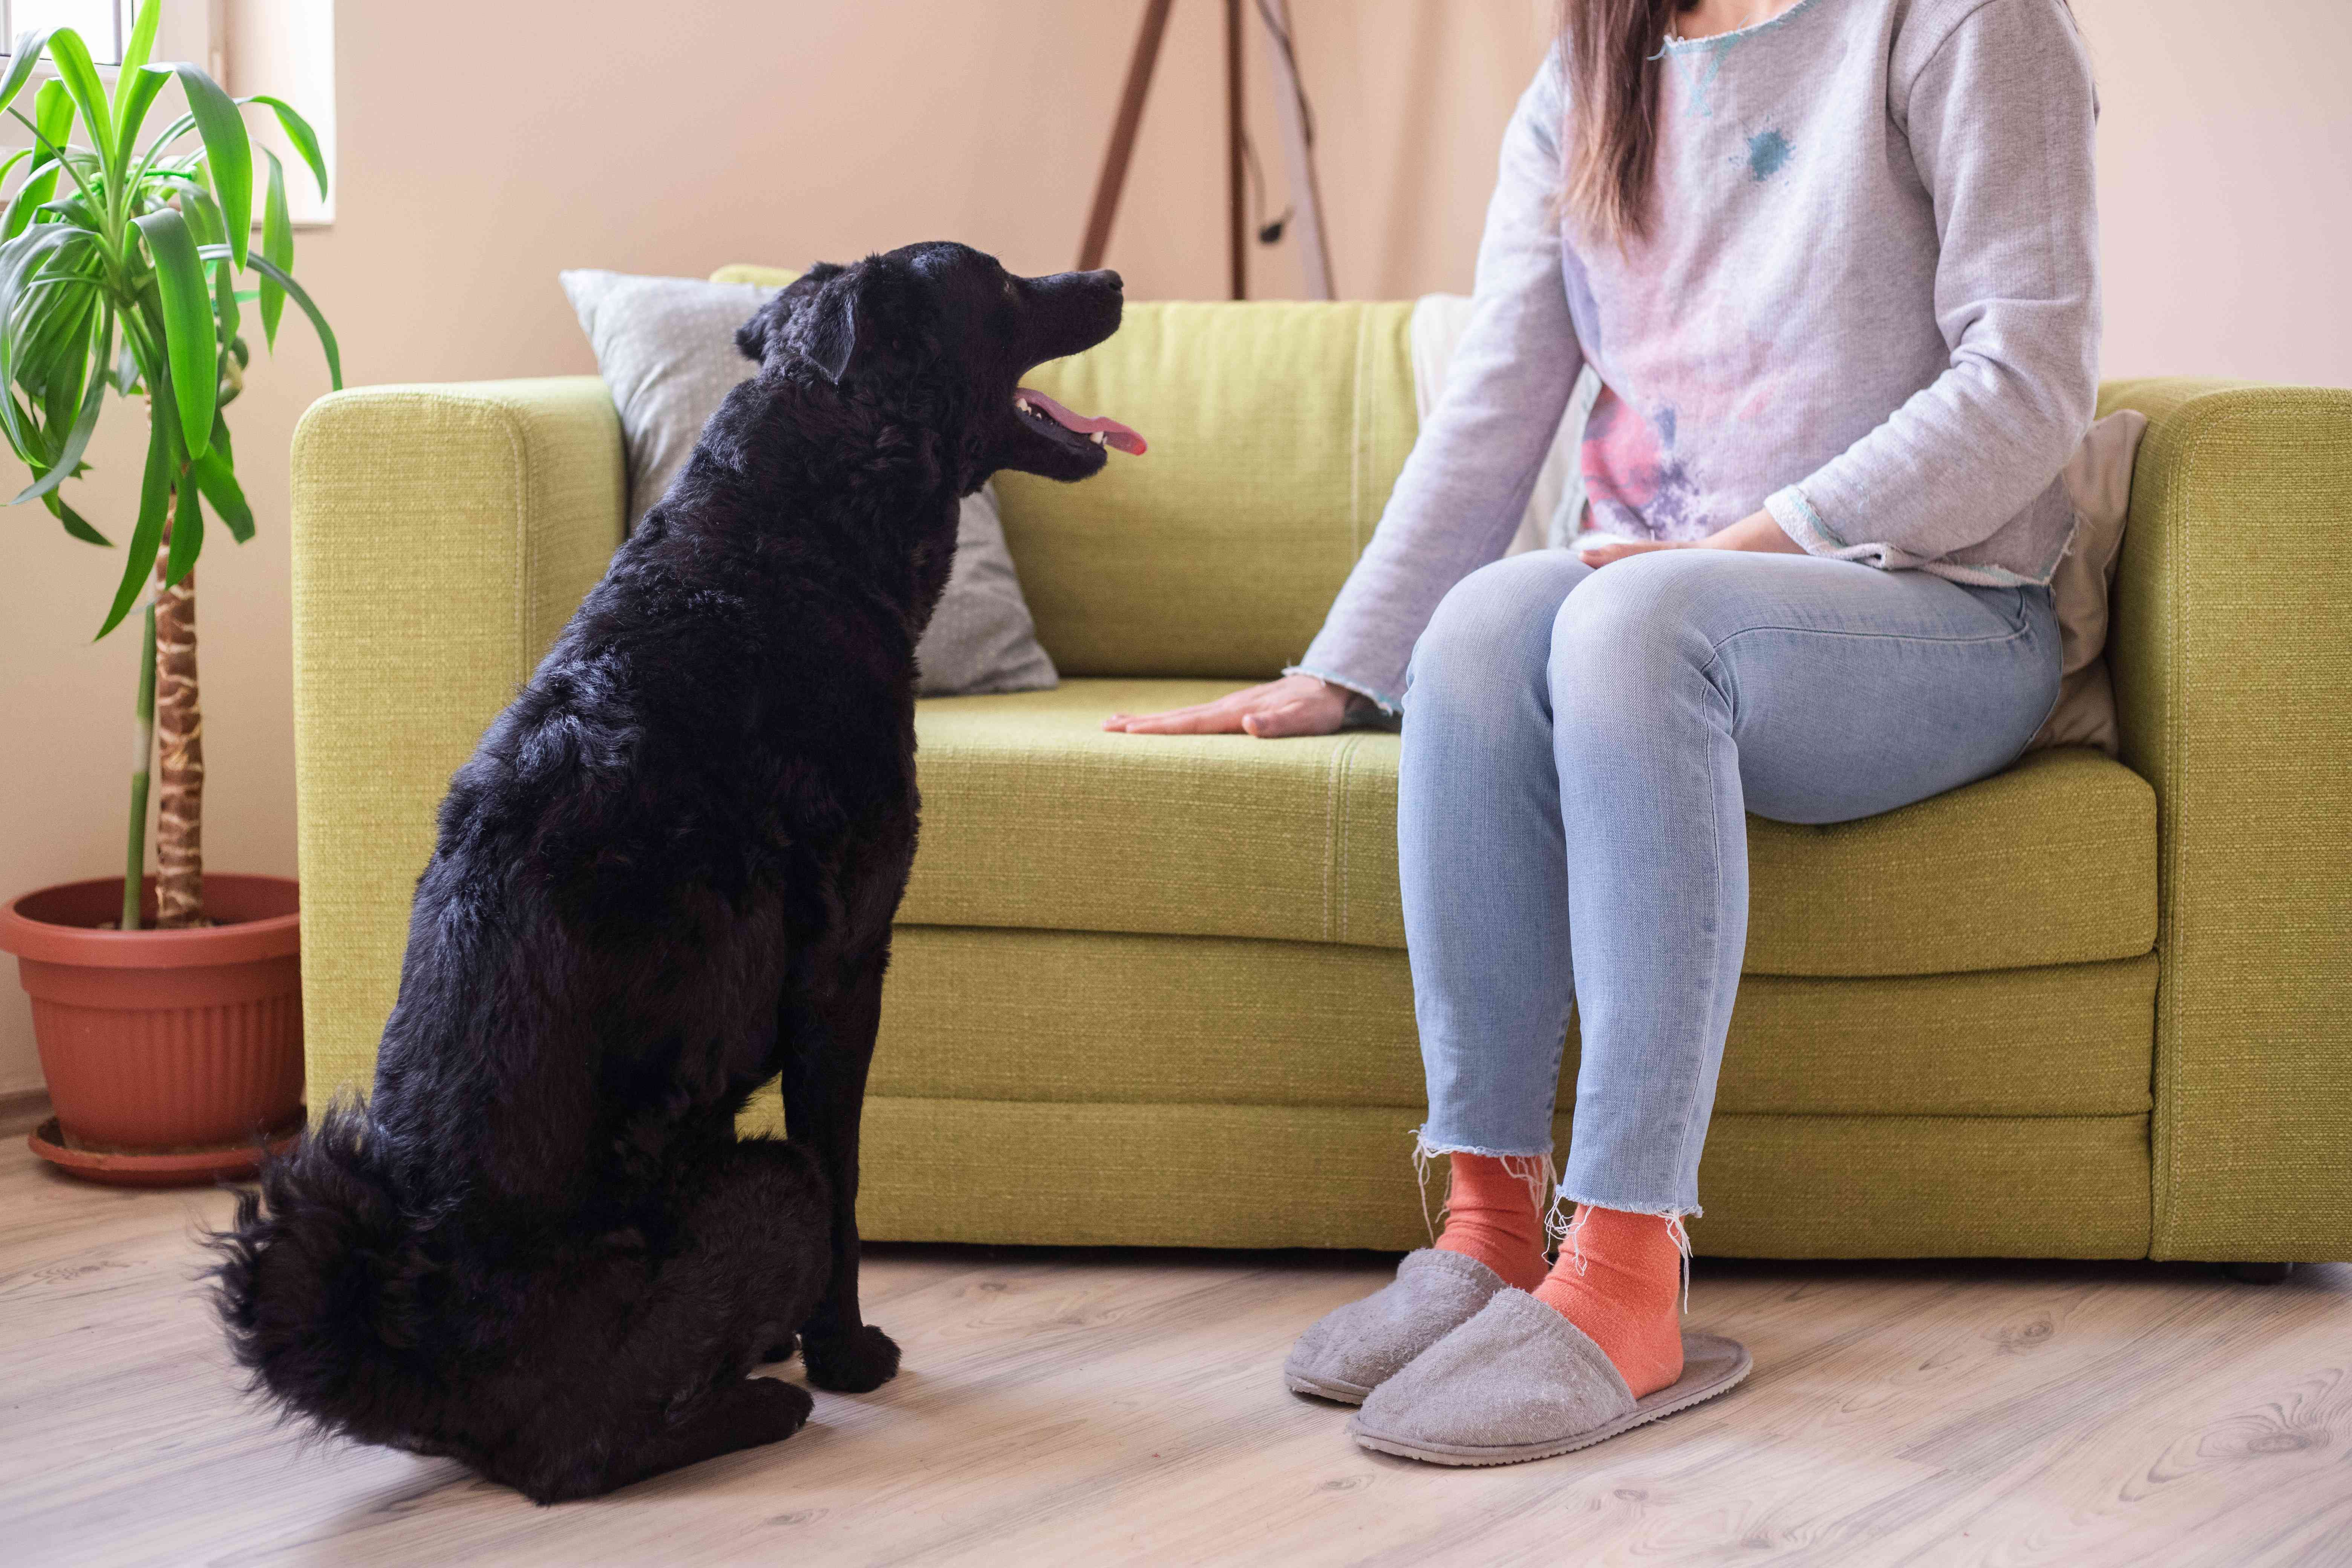 person sits and pats on green couch while black dog stands and stares at them